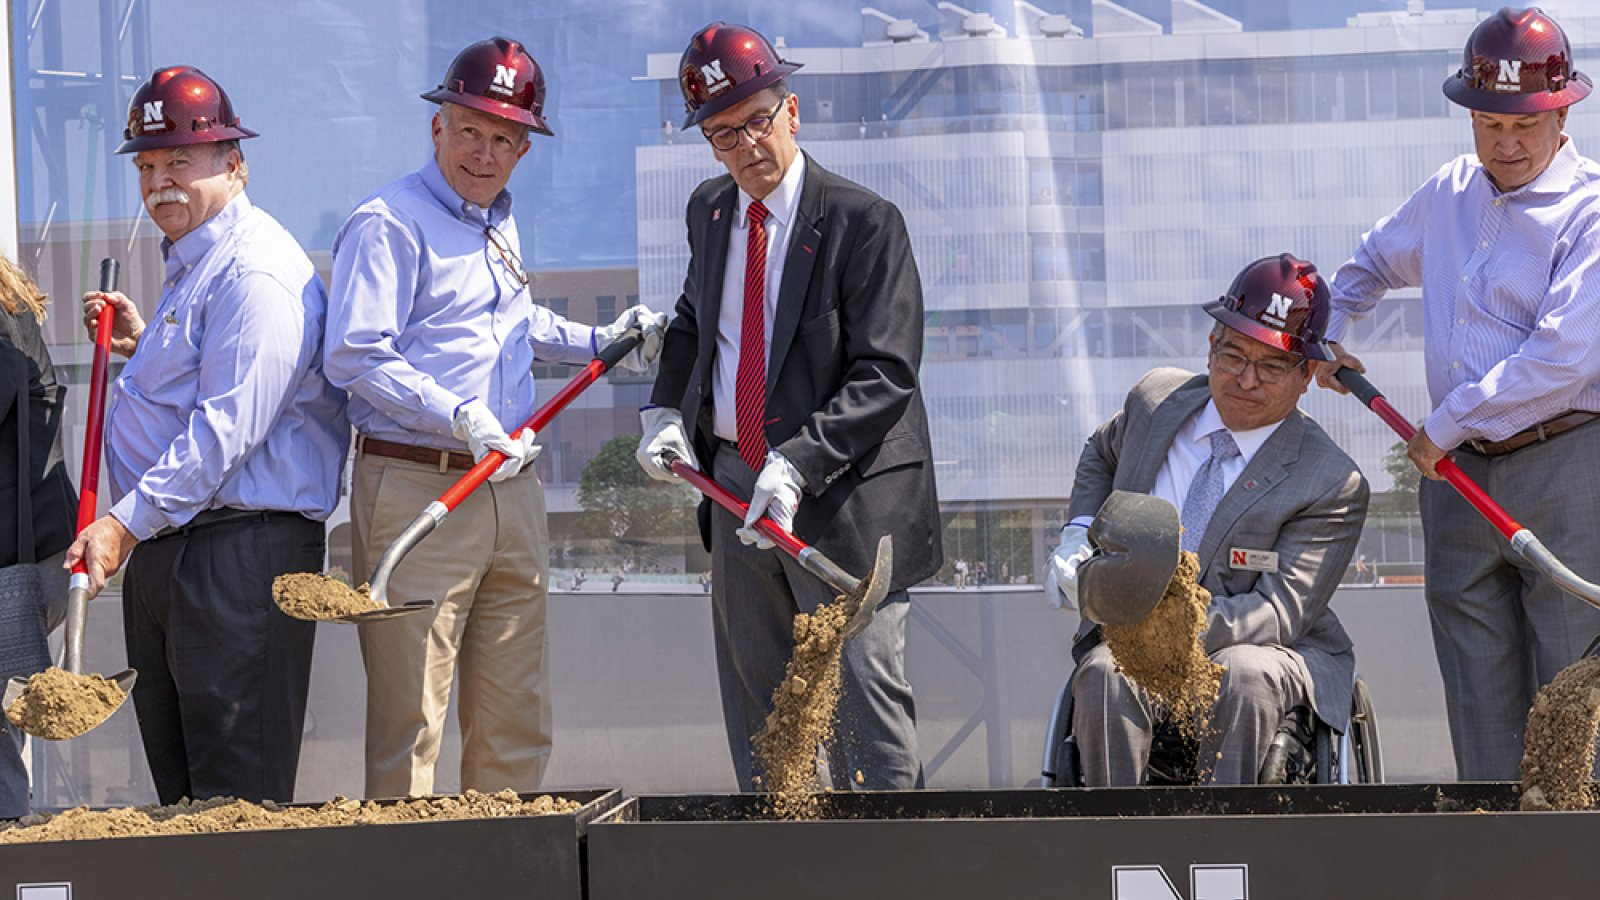 Dean Lance C. Pérez (second from right) joins with members of the College of Engineering Advisory Board and the UNL Chancellor in turning a shovelful of dirt during the groundbreaking ceremony for Kiewit Hall on Monday, June 28. (Craig Chandler / University Communication)